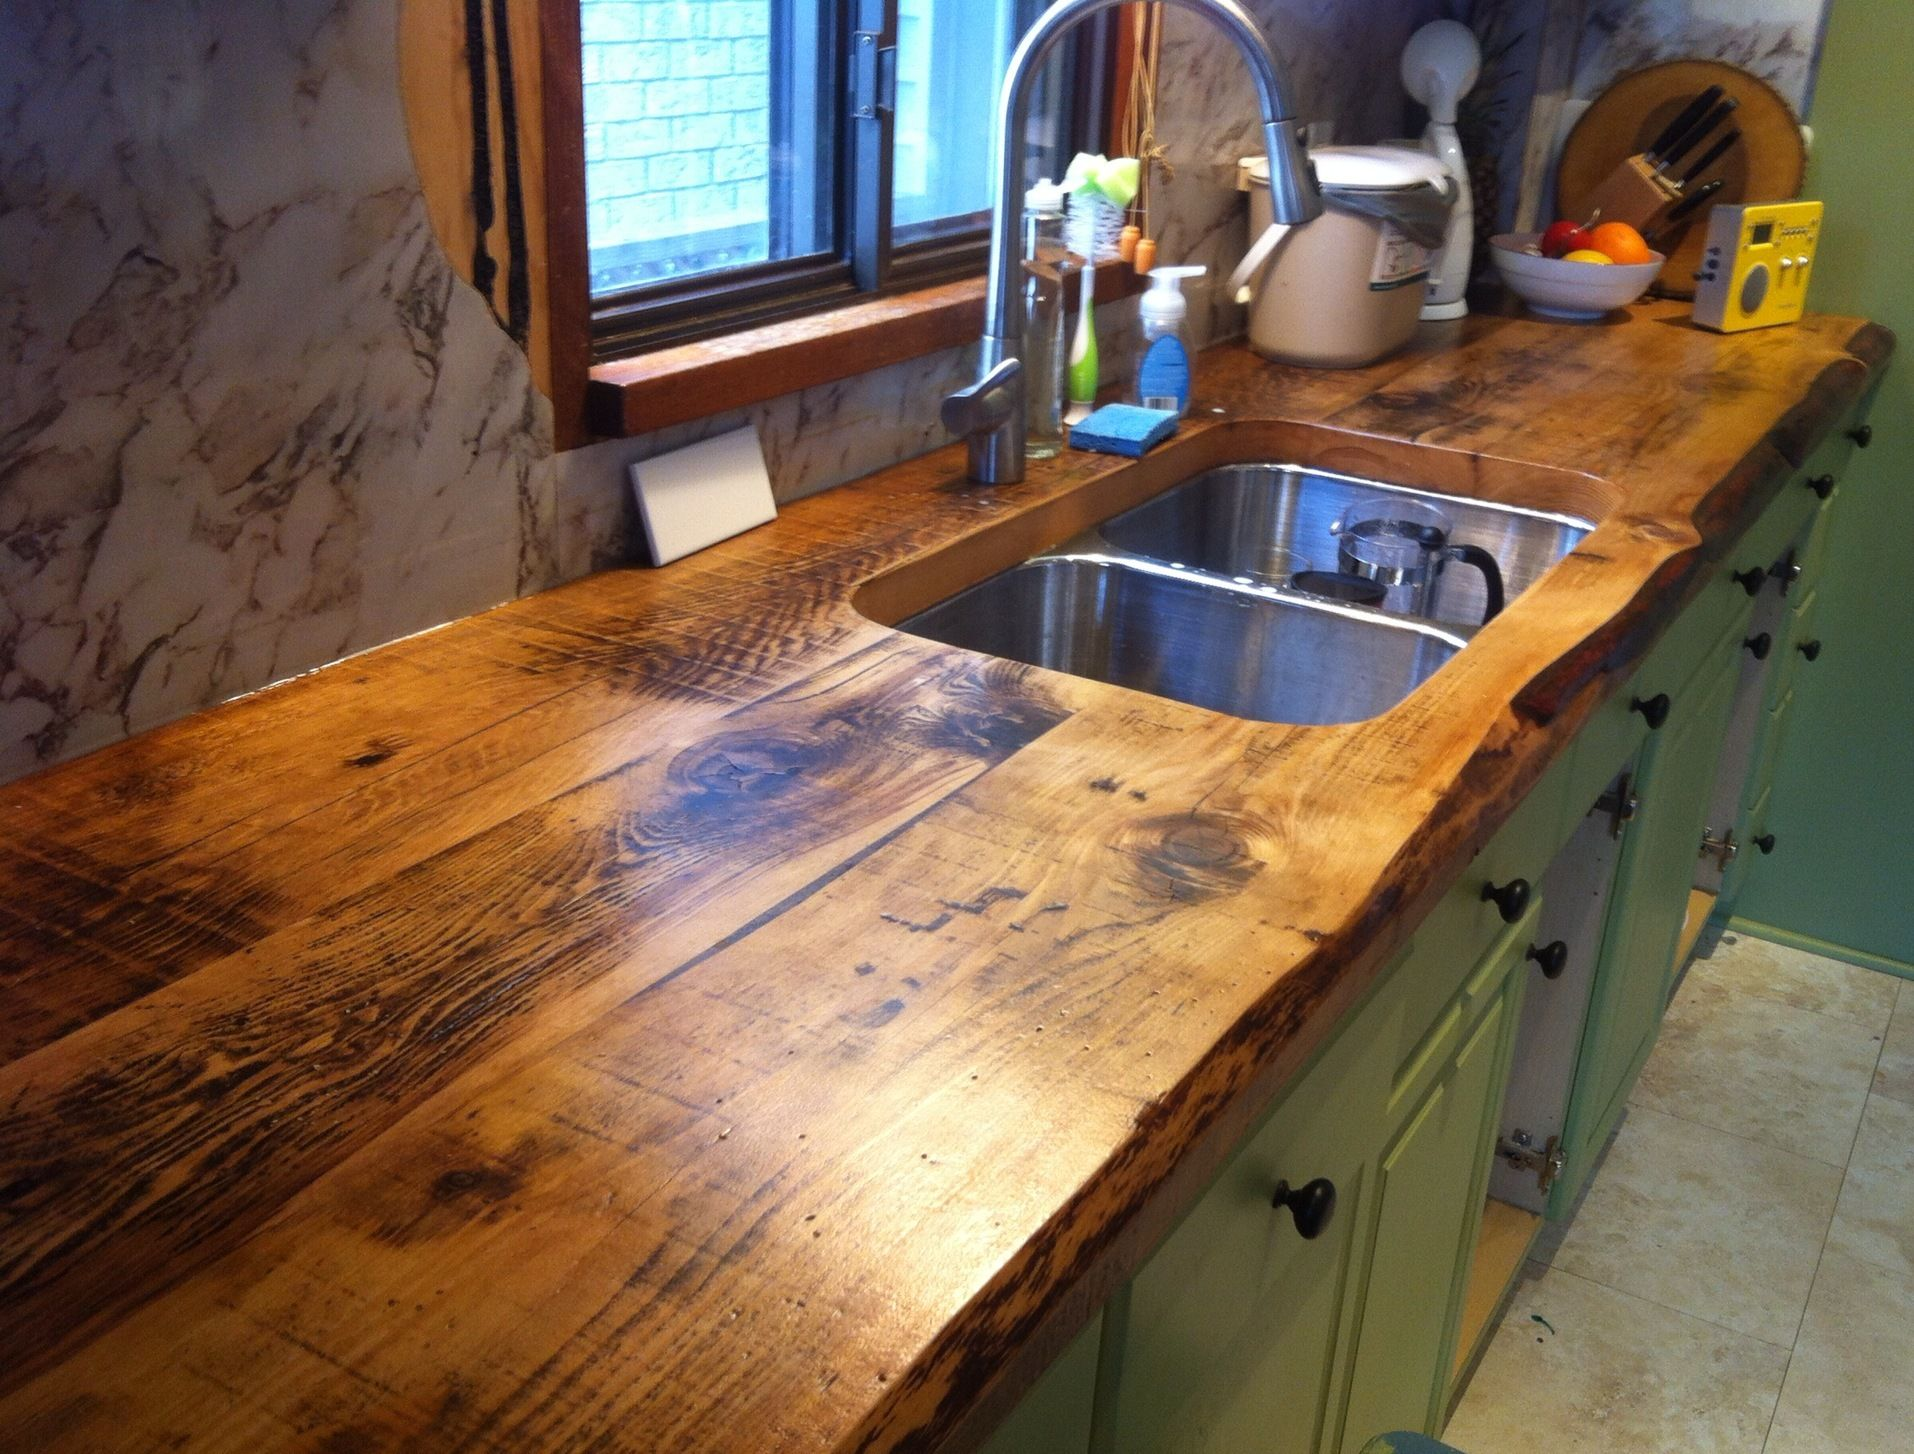 wooden kitchen countertops awesome live edge kitchen counter built with 2 inch thick hemlock floor boards by barnboardstore